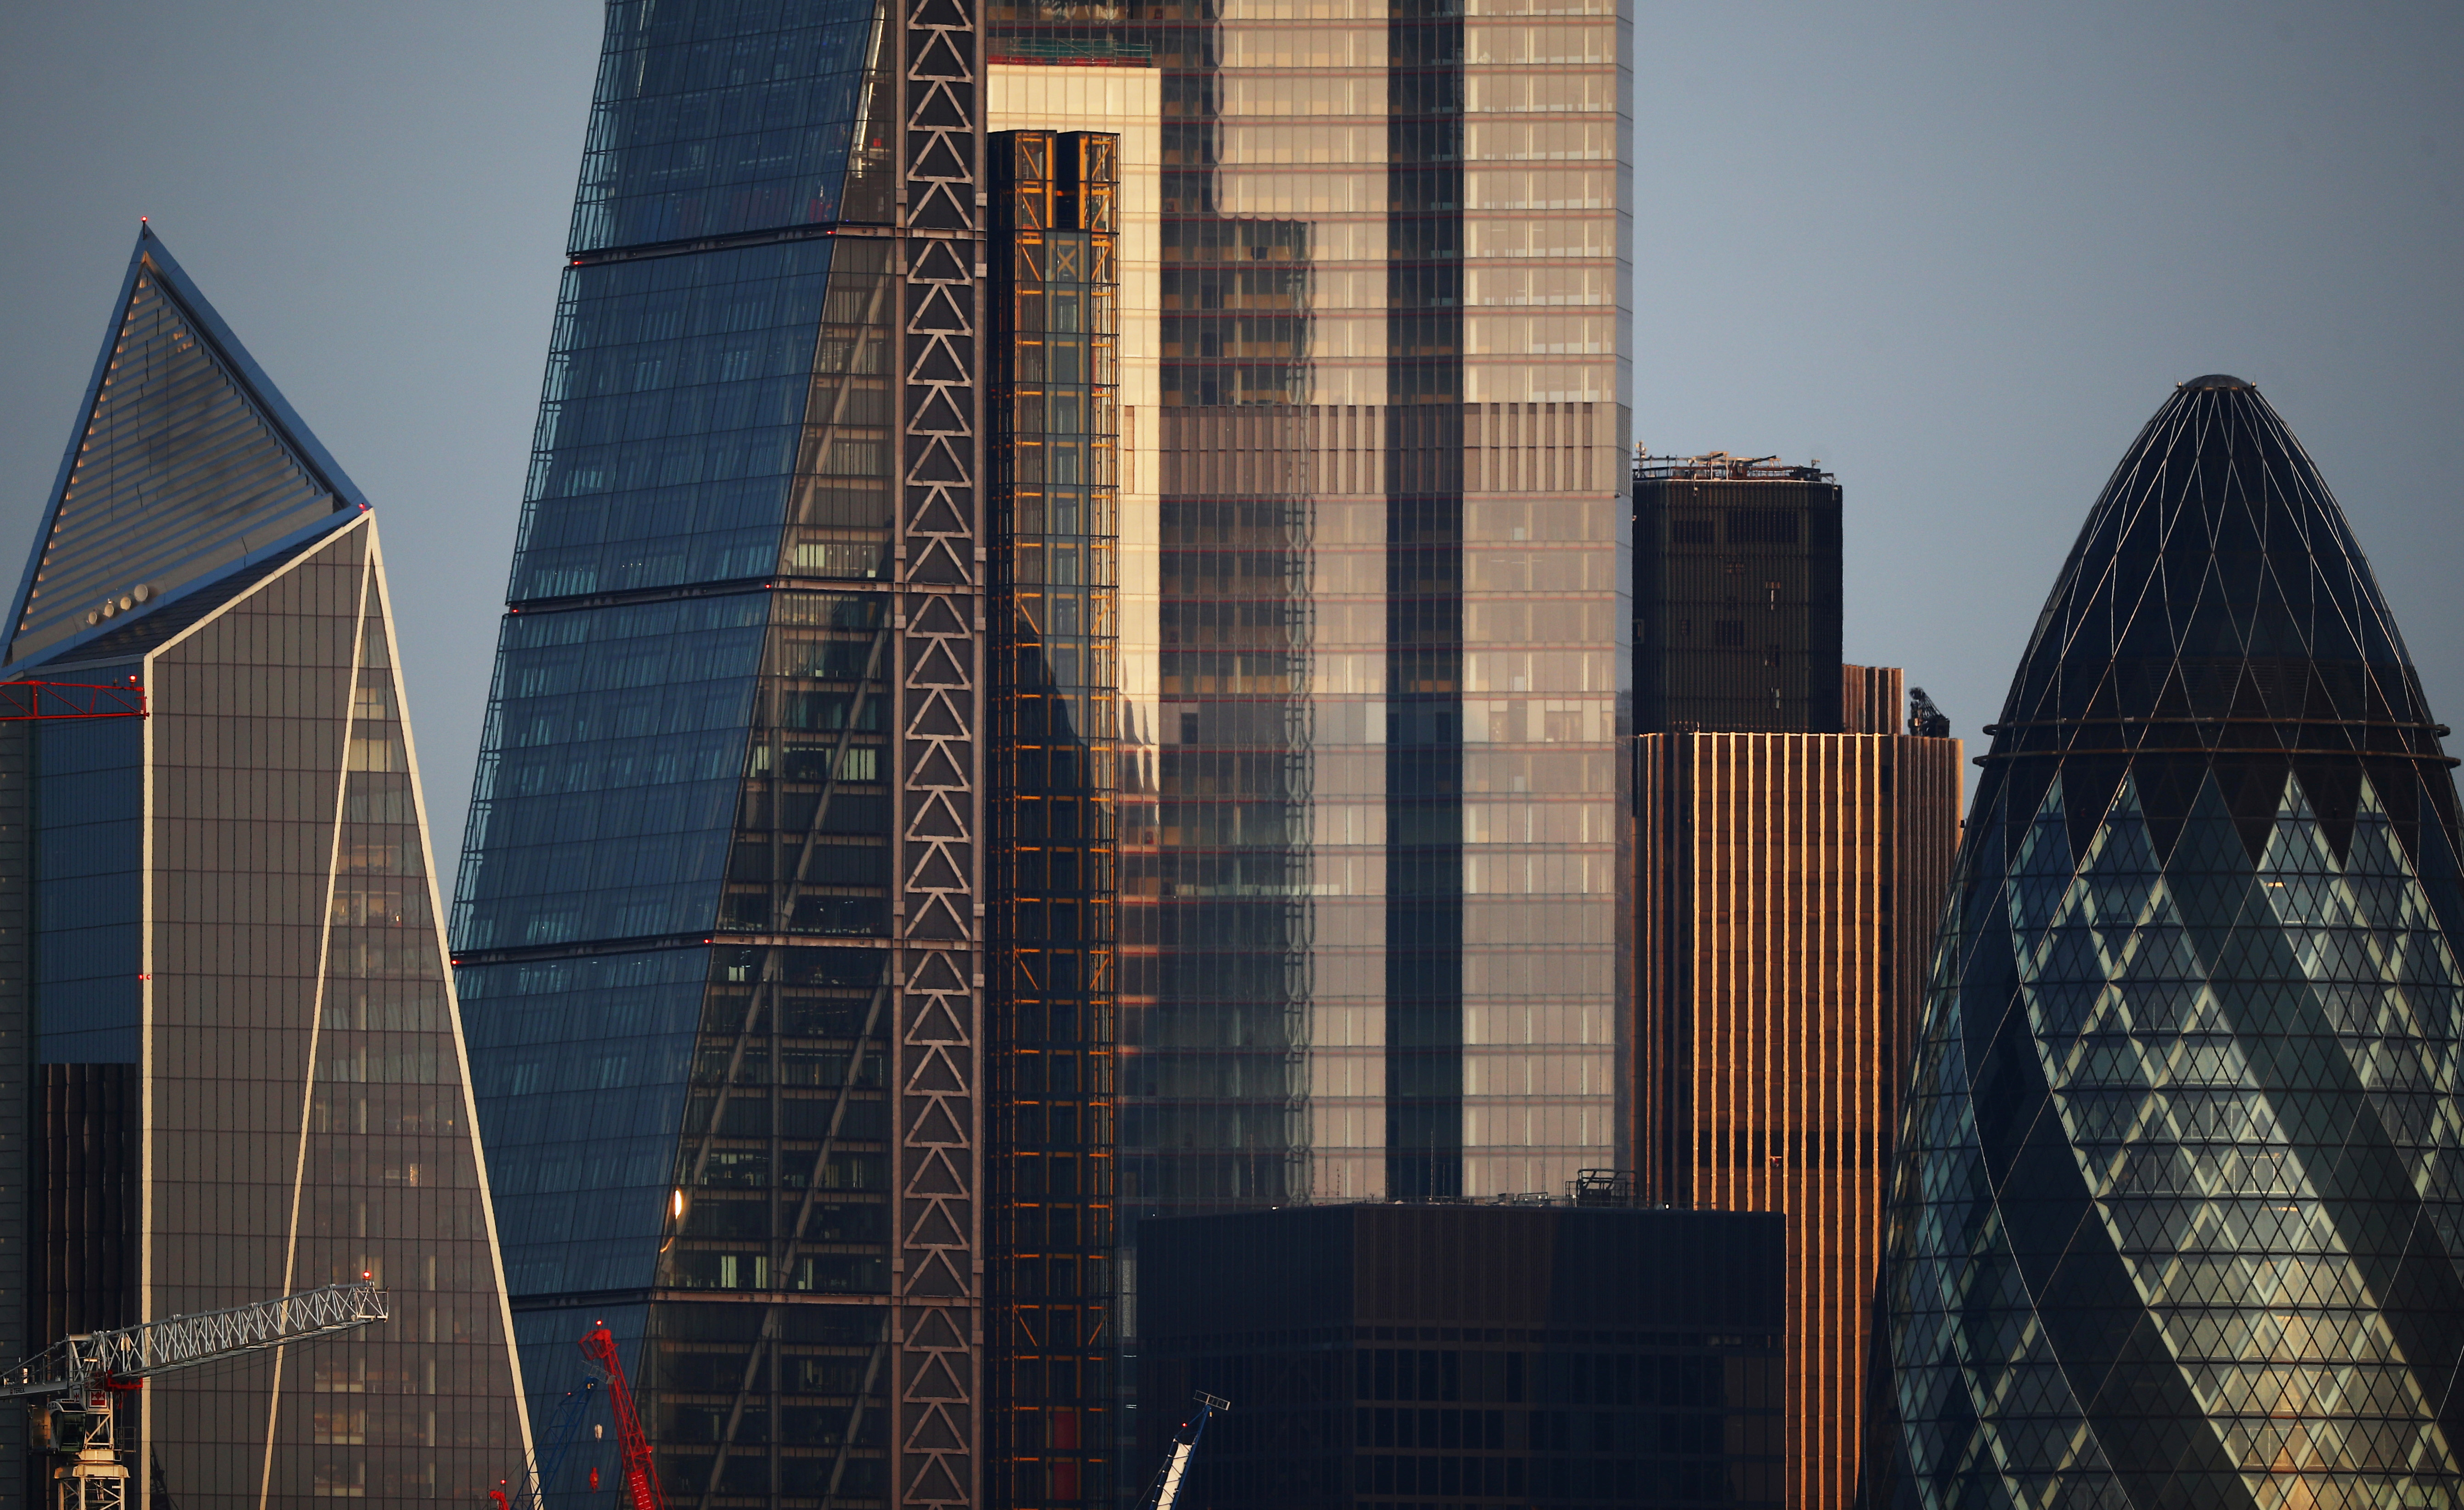 Skyscrapers in The City of London financial district are seen in London, Britain, September 14, 2020. REUTERS/Hannah McKay